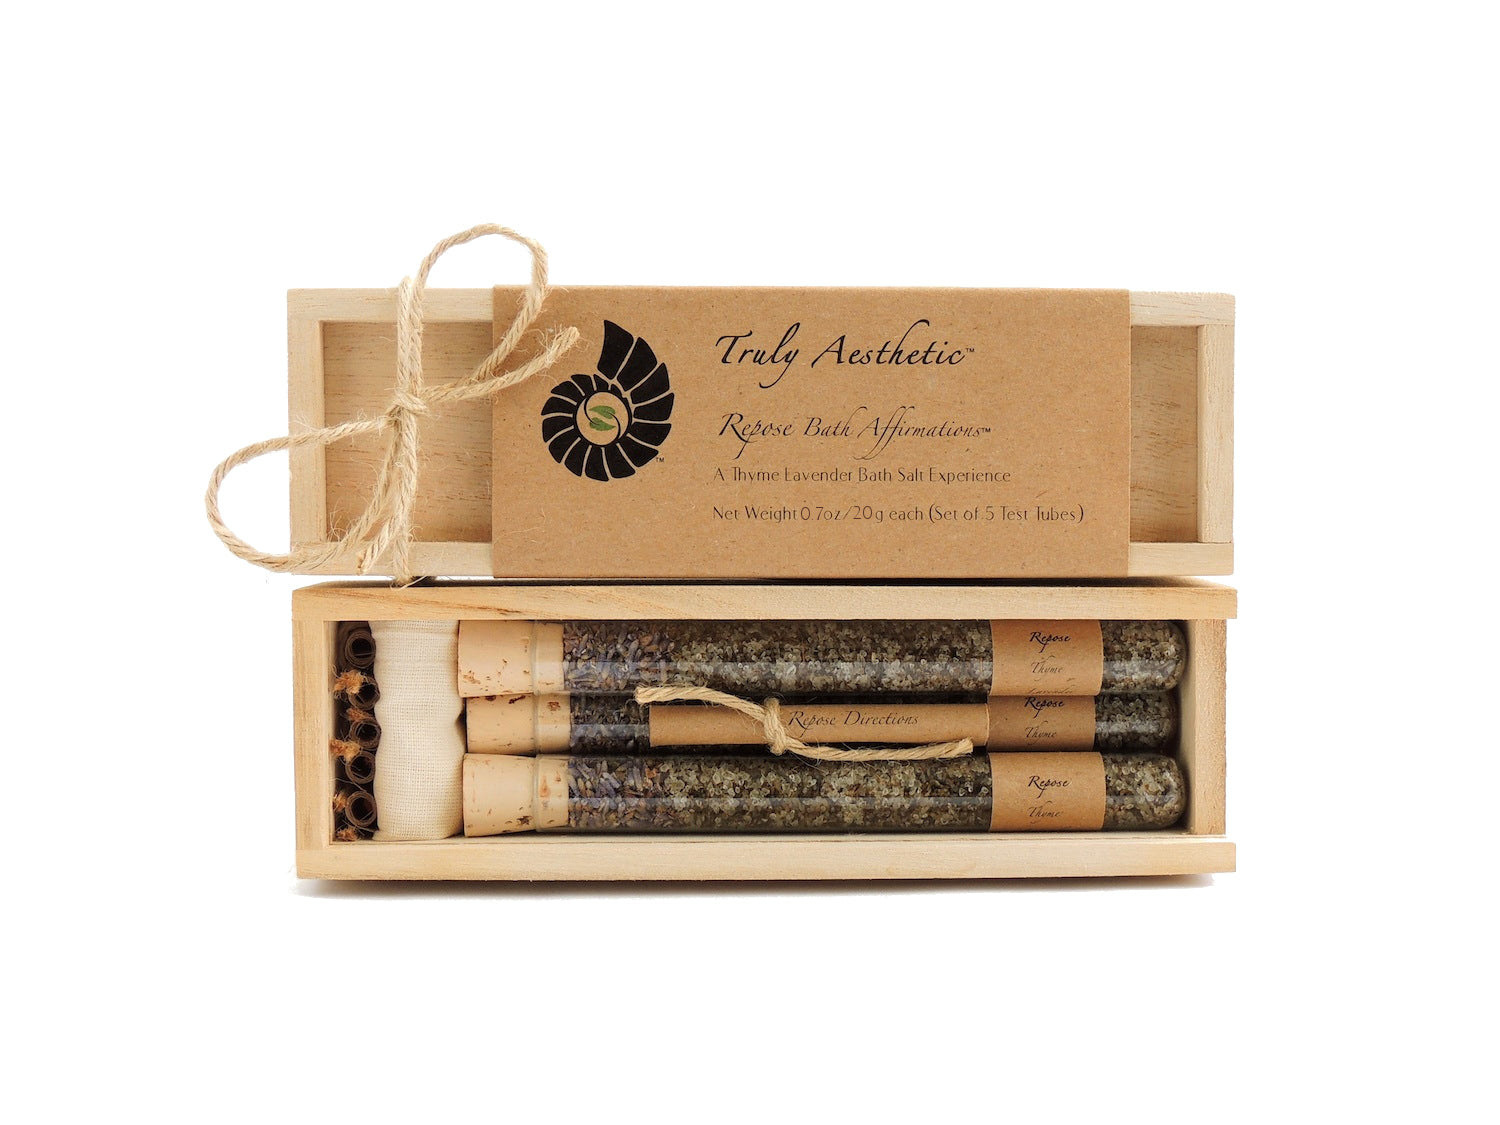 Truly Aesthetic Repose Thyme Lavender Bath Affirmations Bath Salts Gift Box Set Packaging